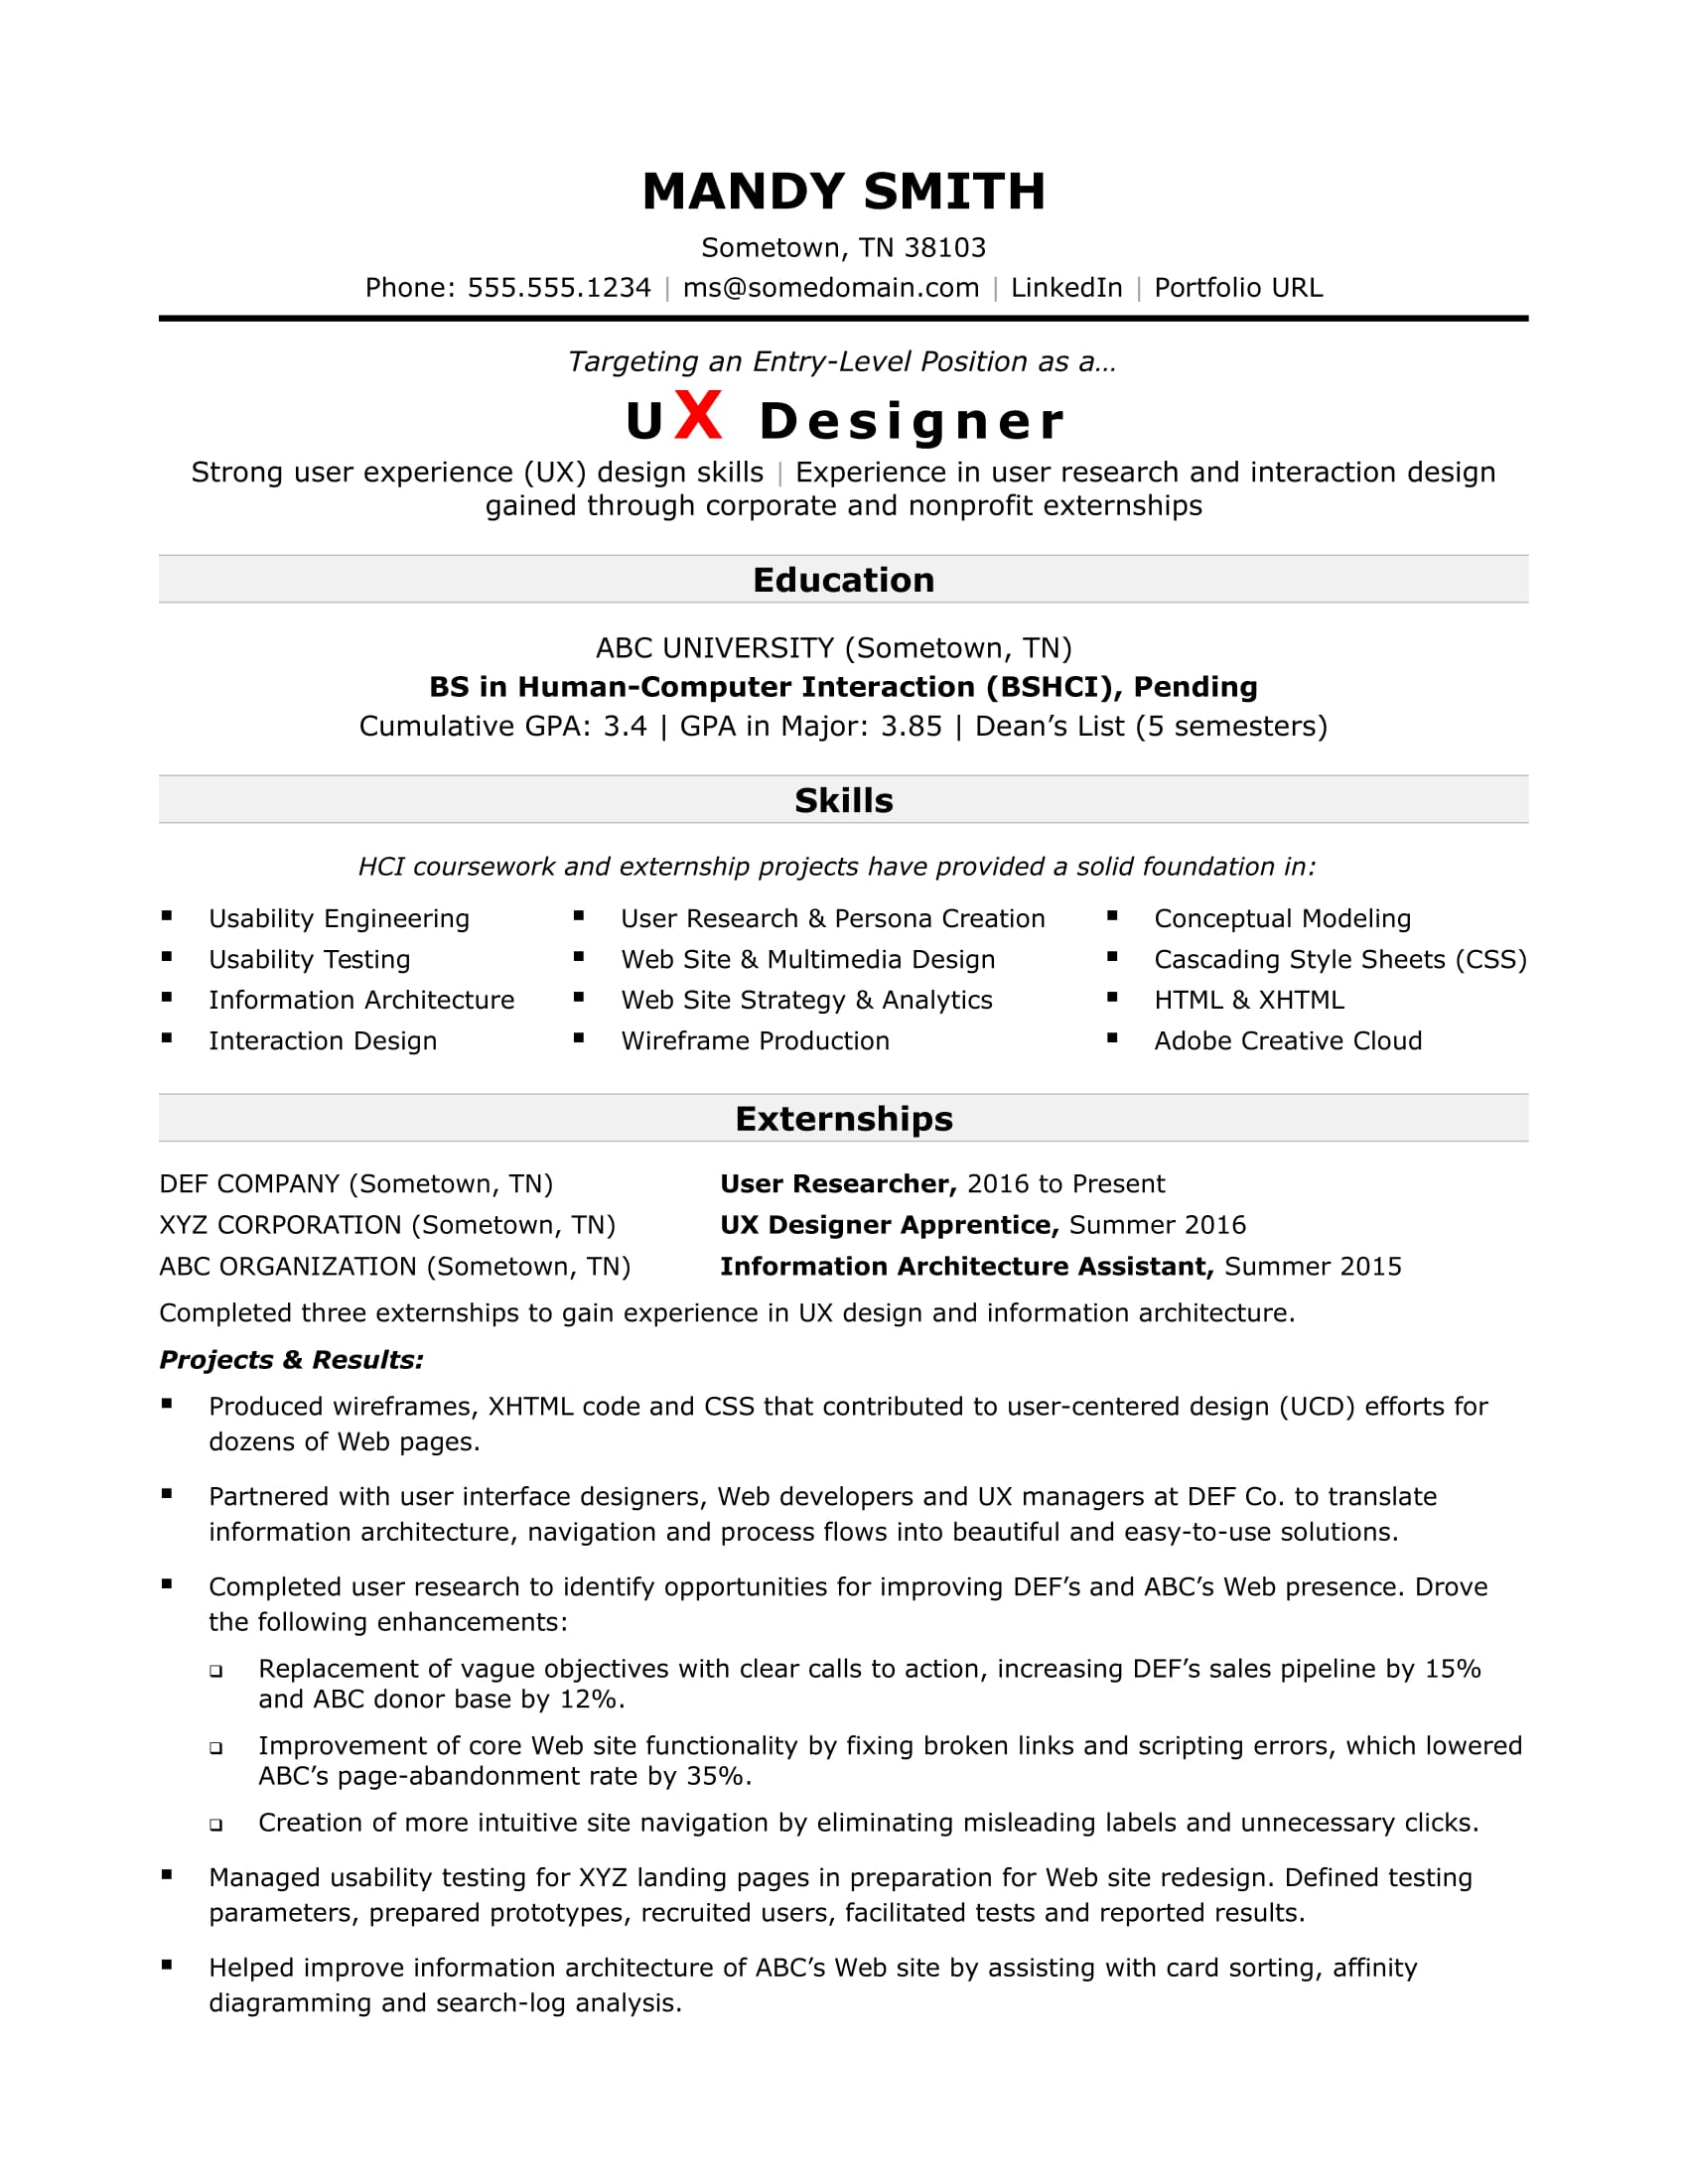 sample resume for an entry level ux designer - Ui Designer Resume